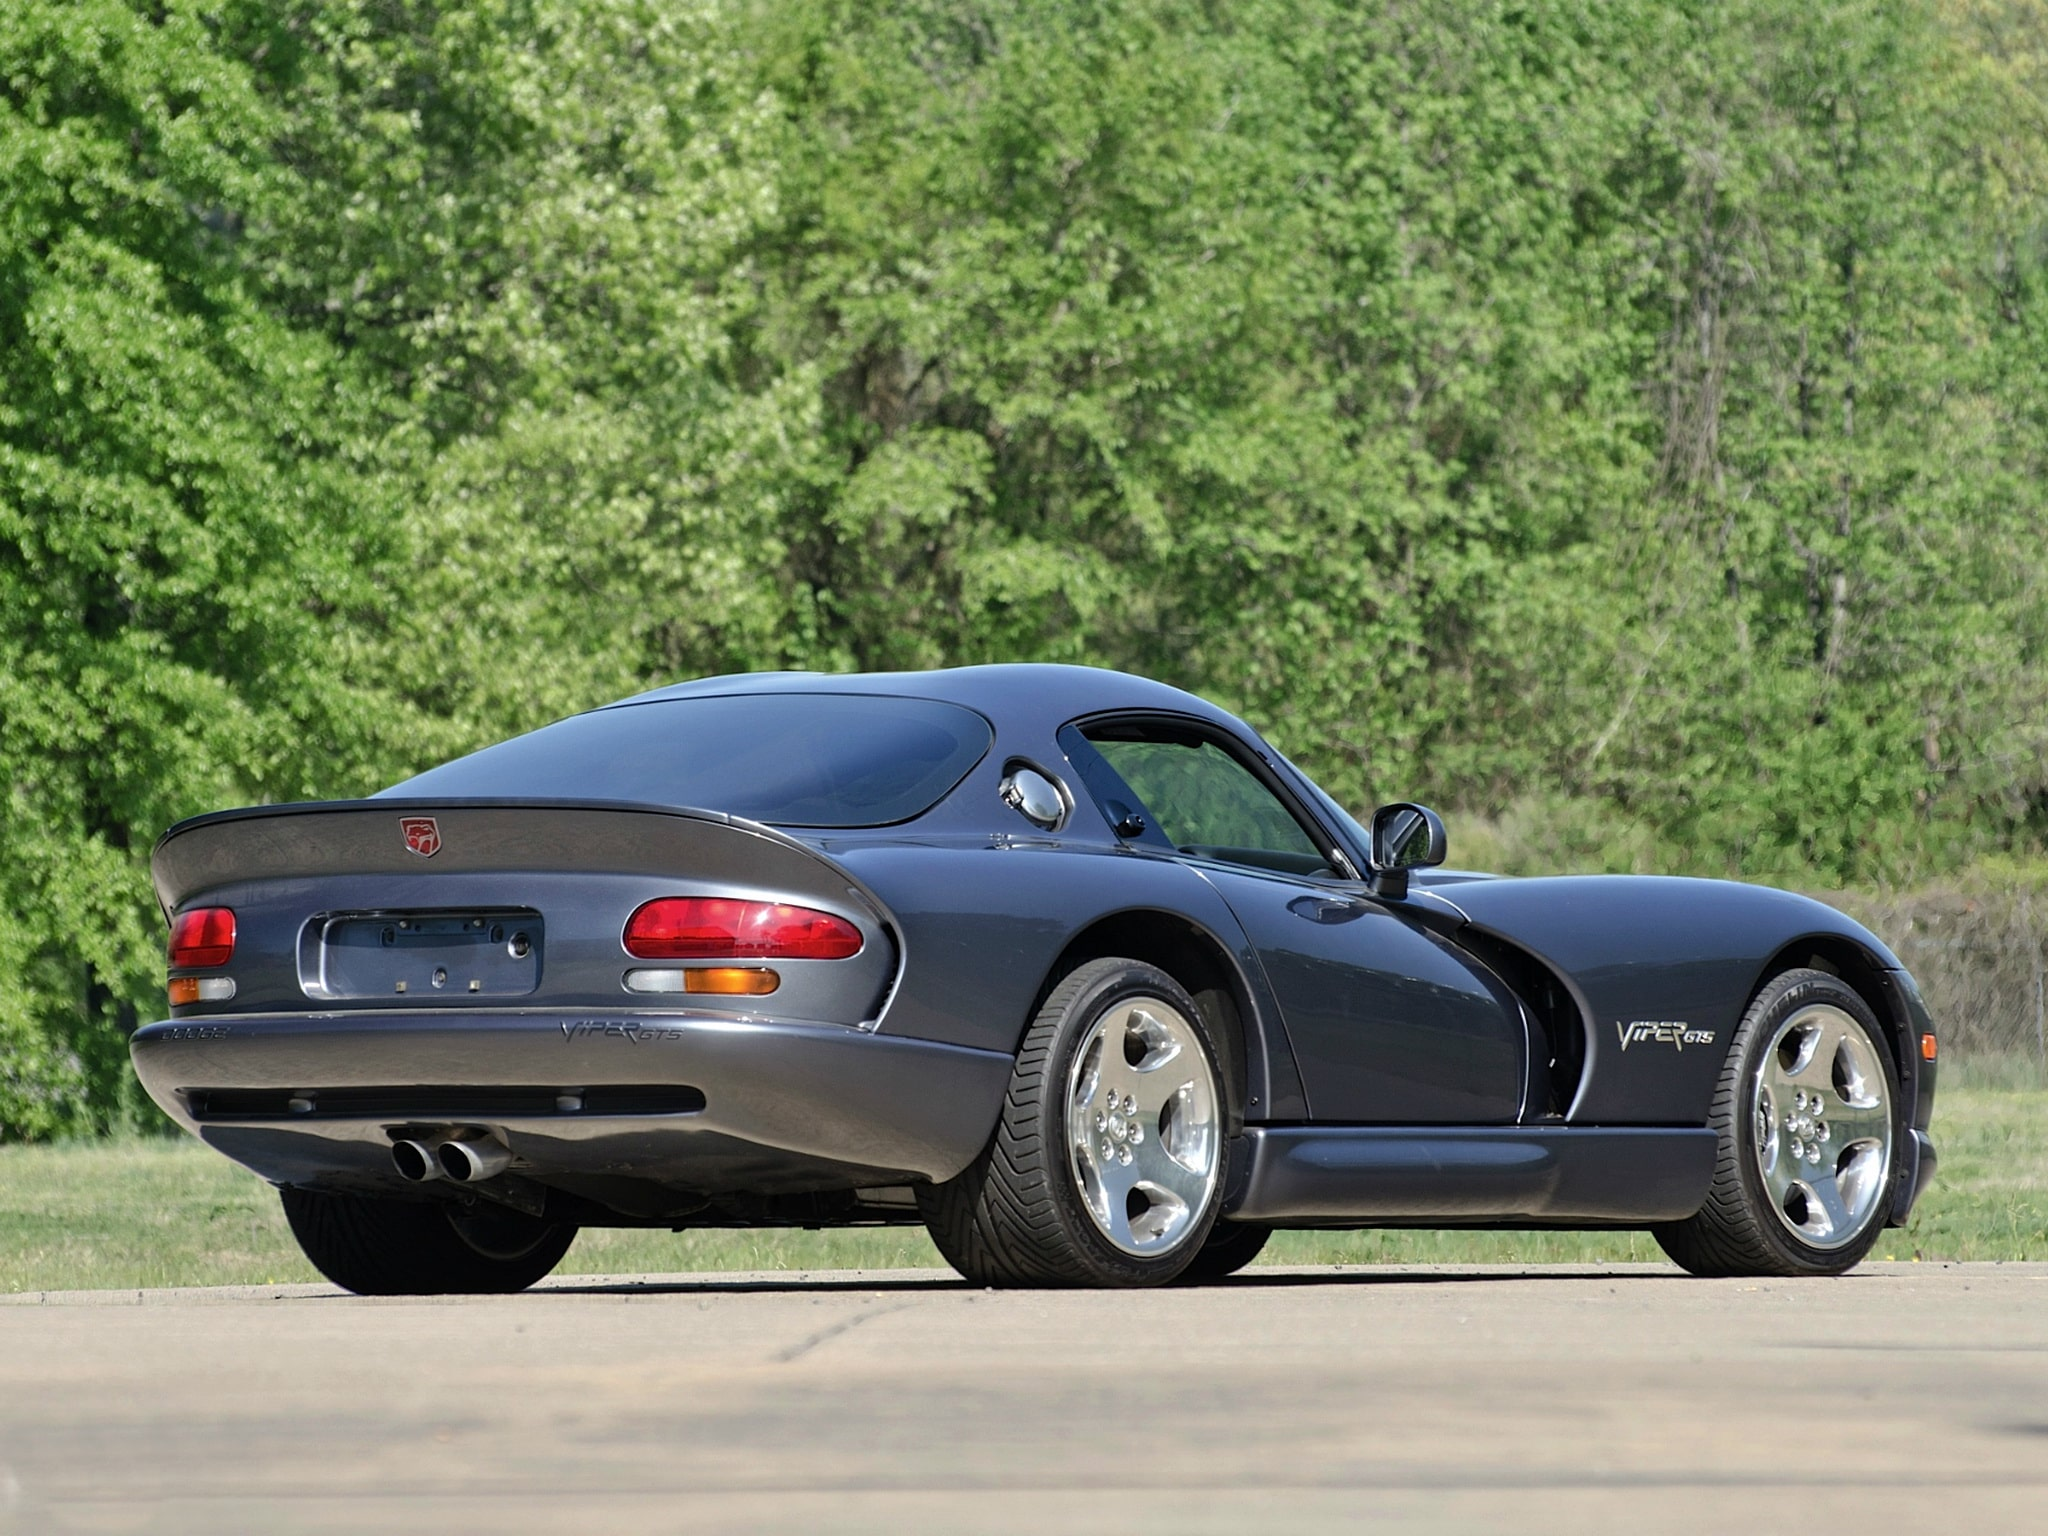 1996 Dodge Viper GTS Full hd wallpapers